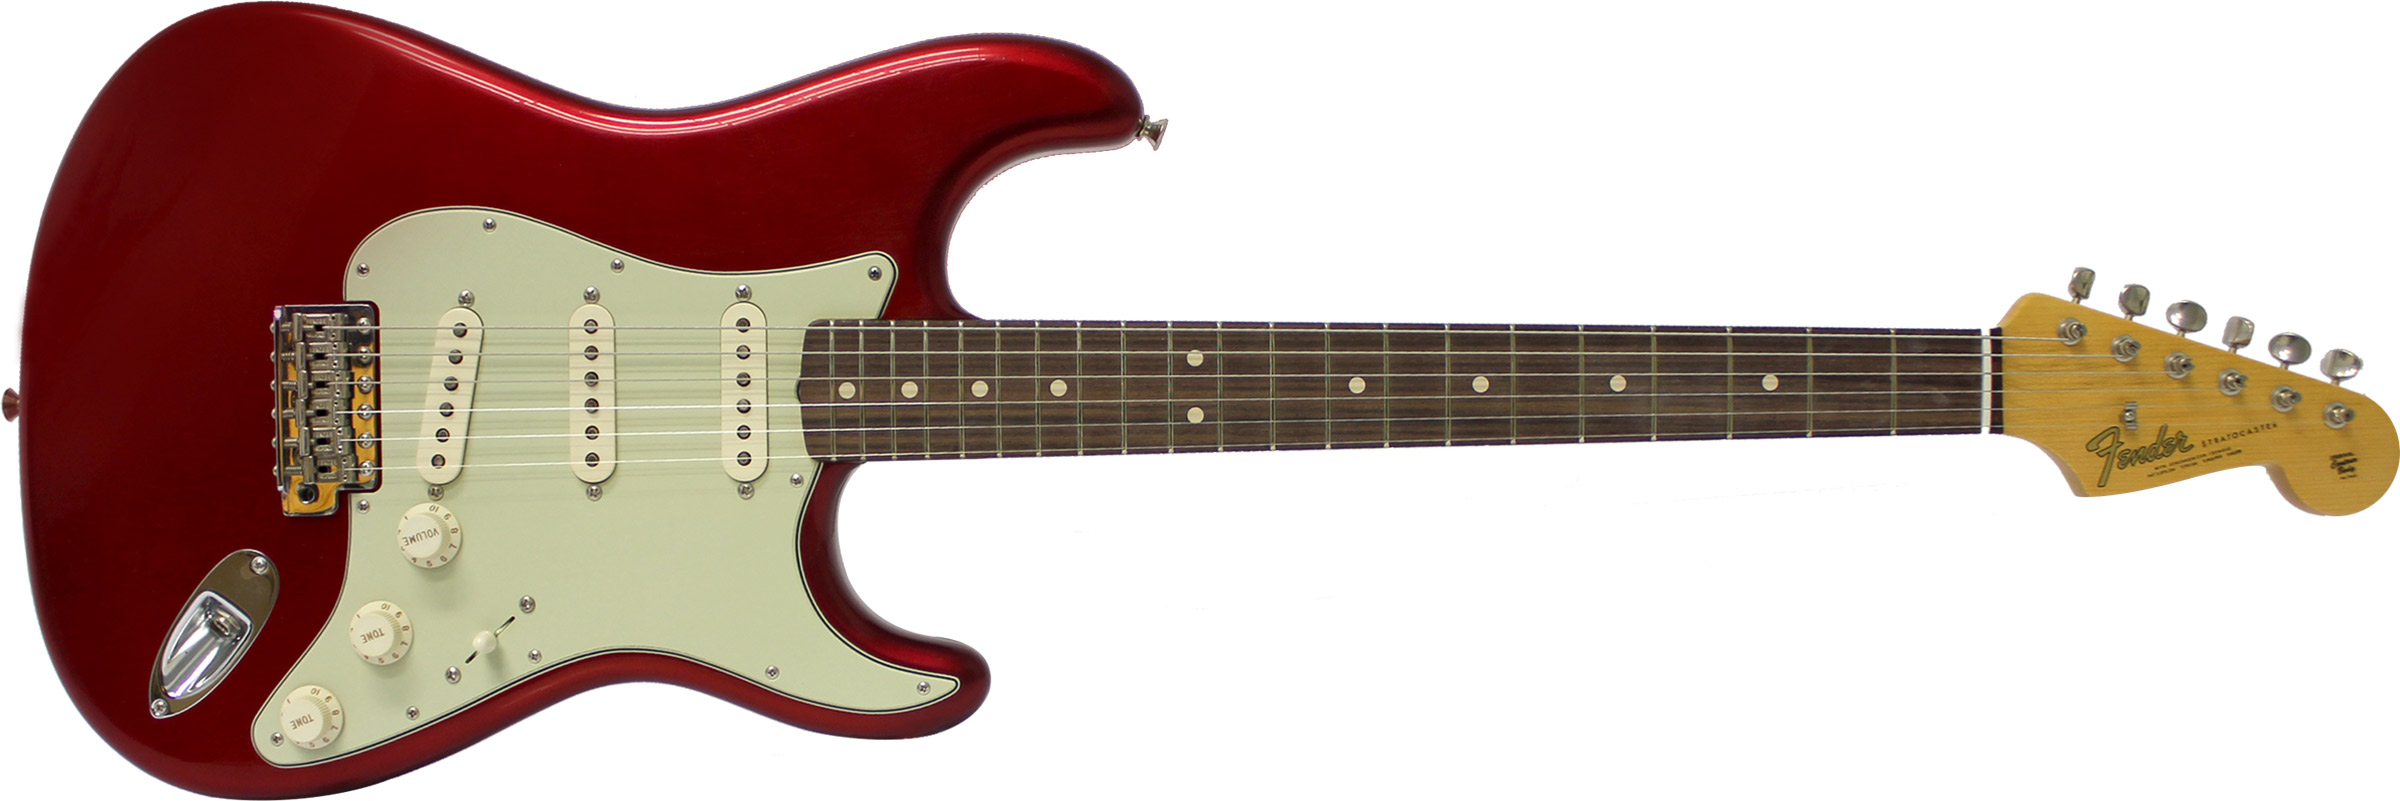 GUITARRA FENDER 64 STRATOCASTER ANNIVERSARY CLOSET CLASSIC 151-9640-809 CANDY APPLE RED